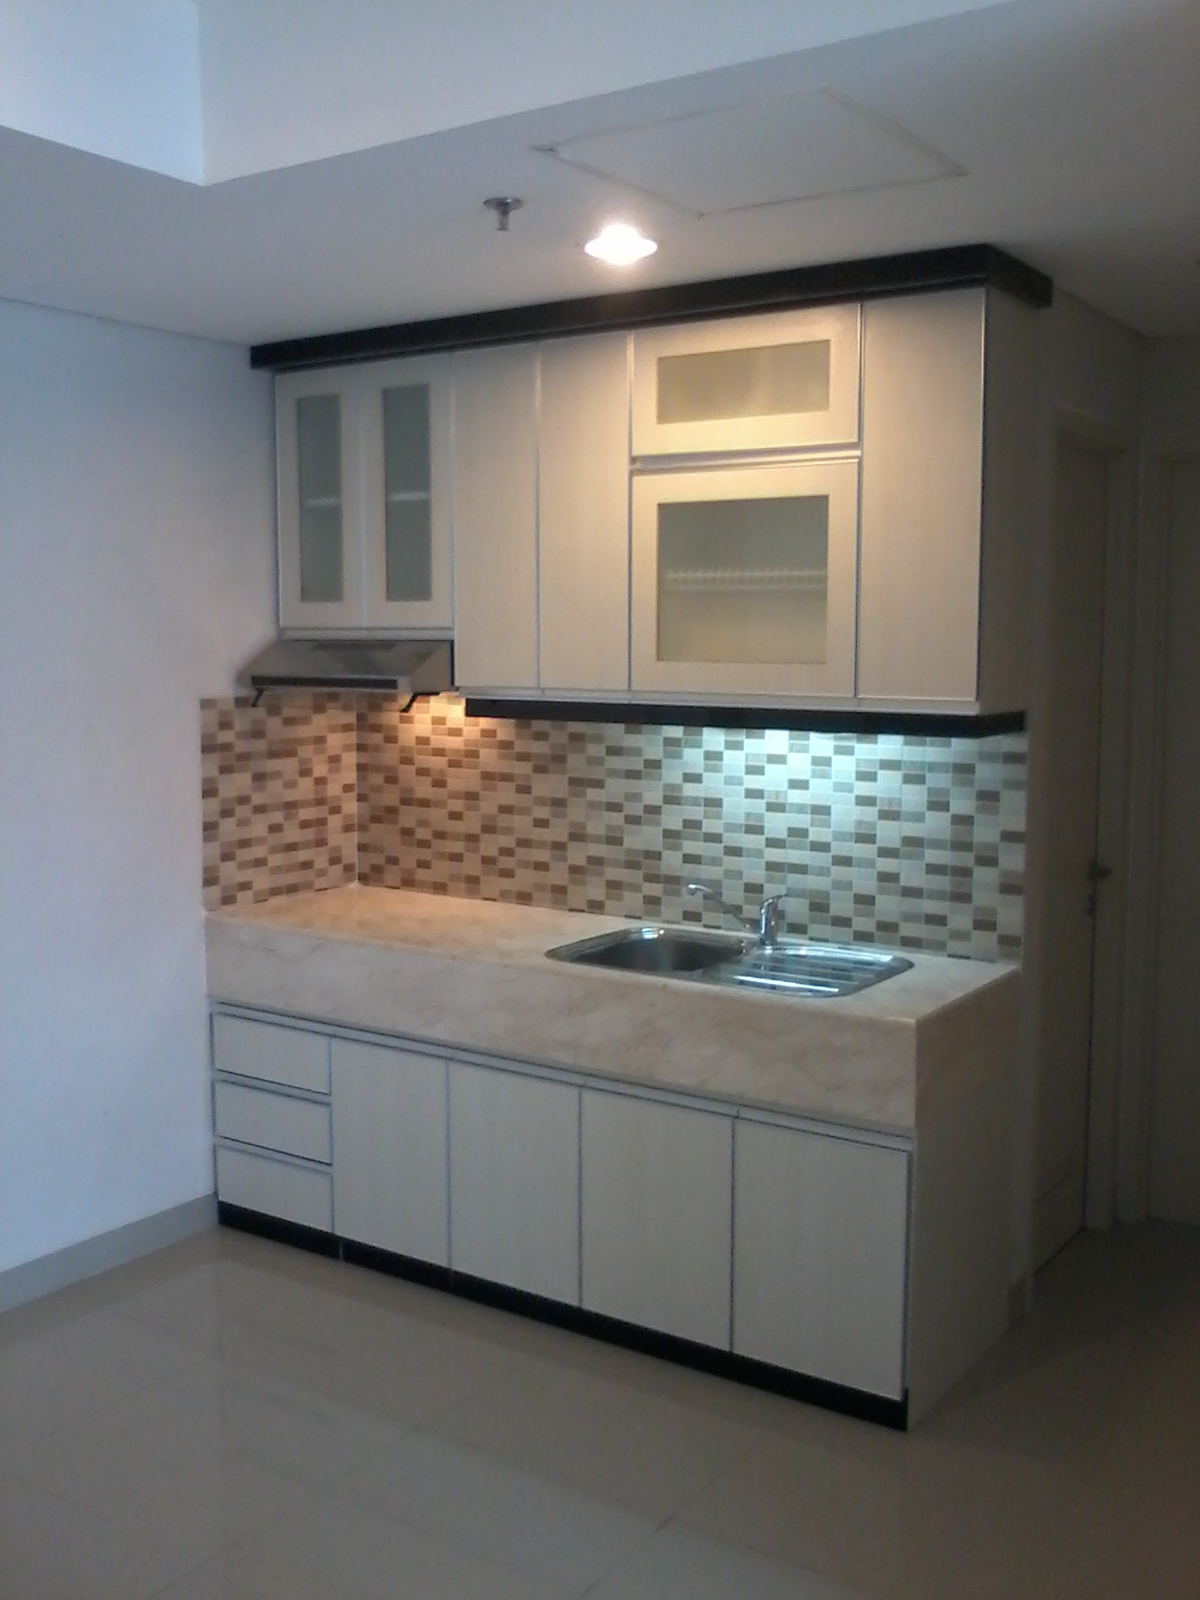 Jasa kitchen set jasa kitchen set apartemen di cikarang Kitchen setting pictures